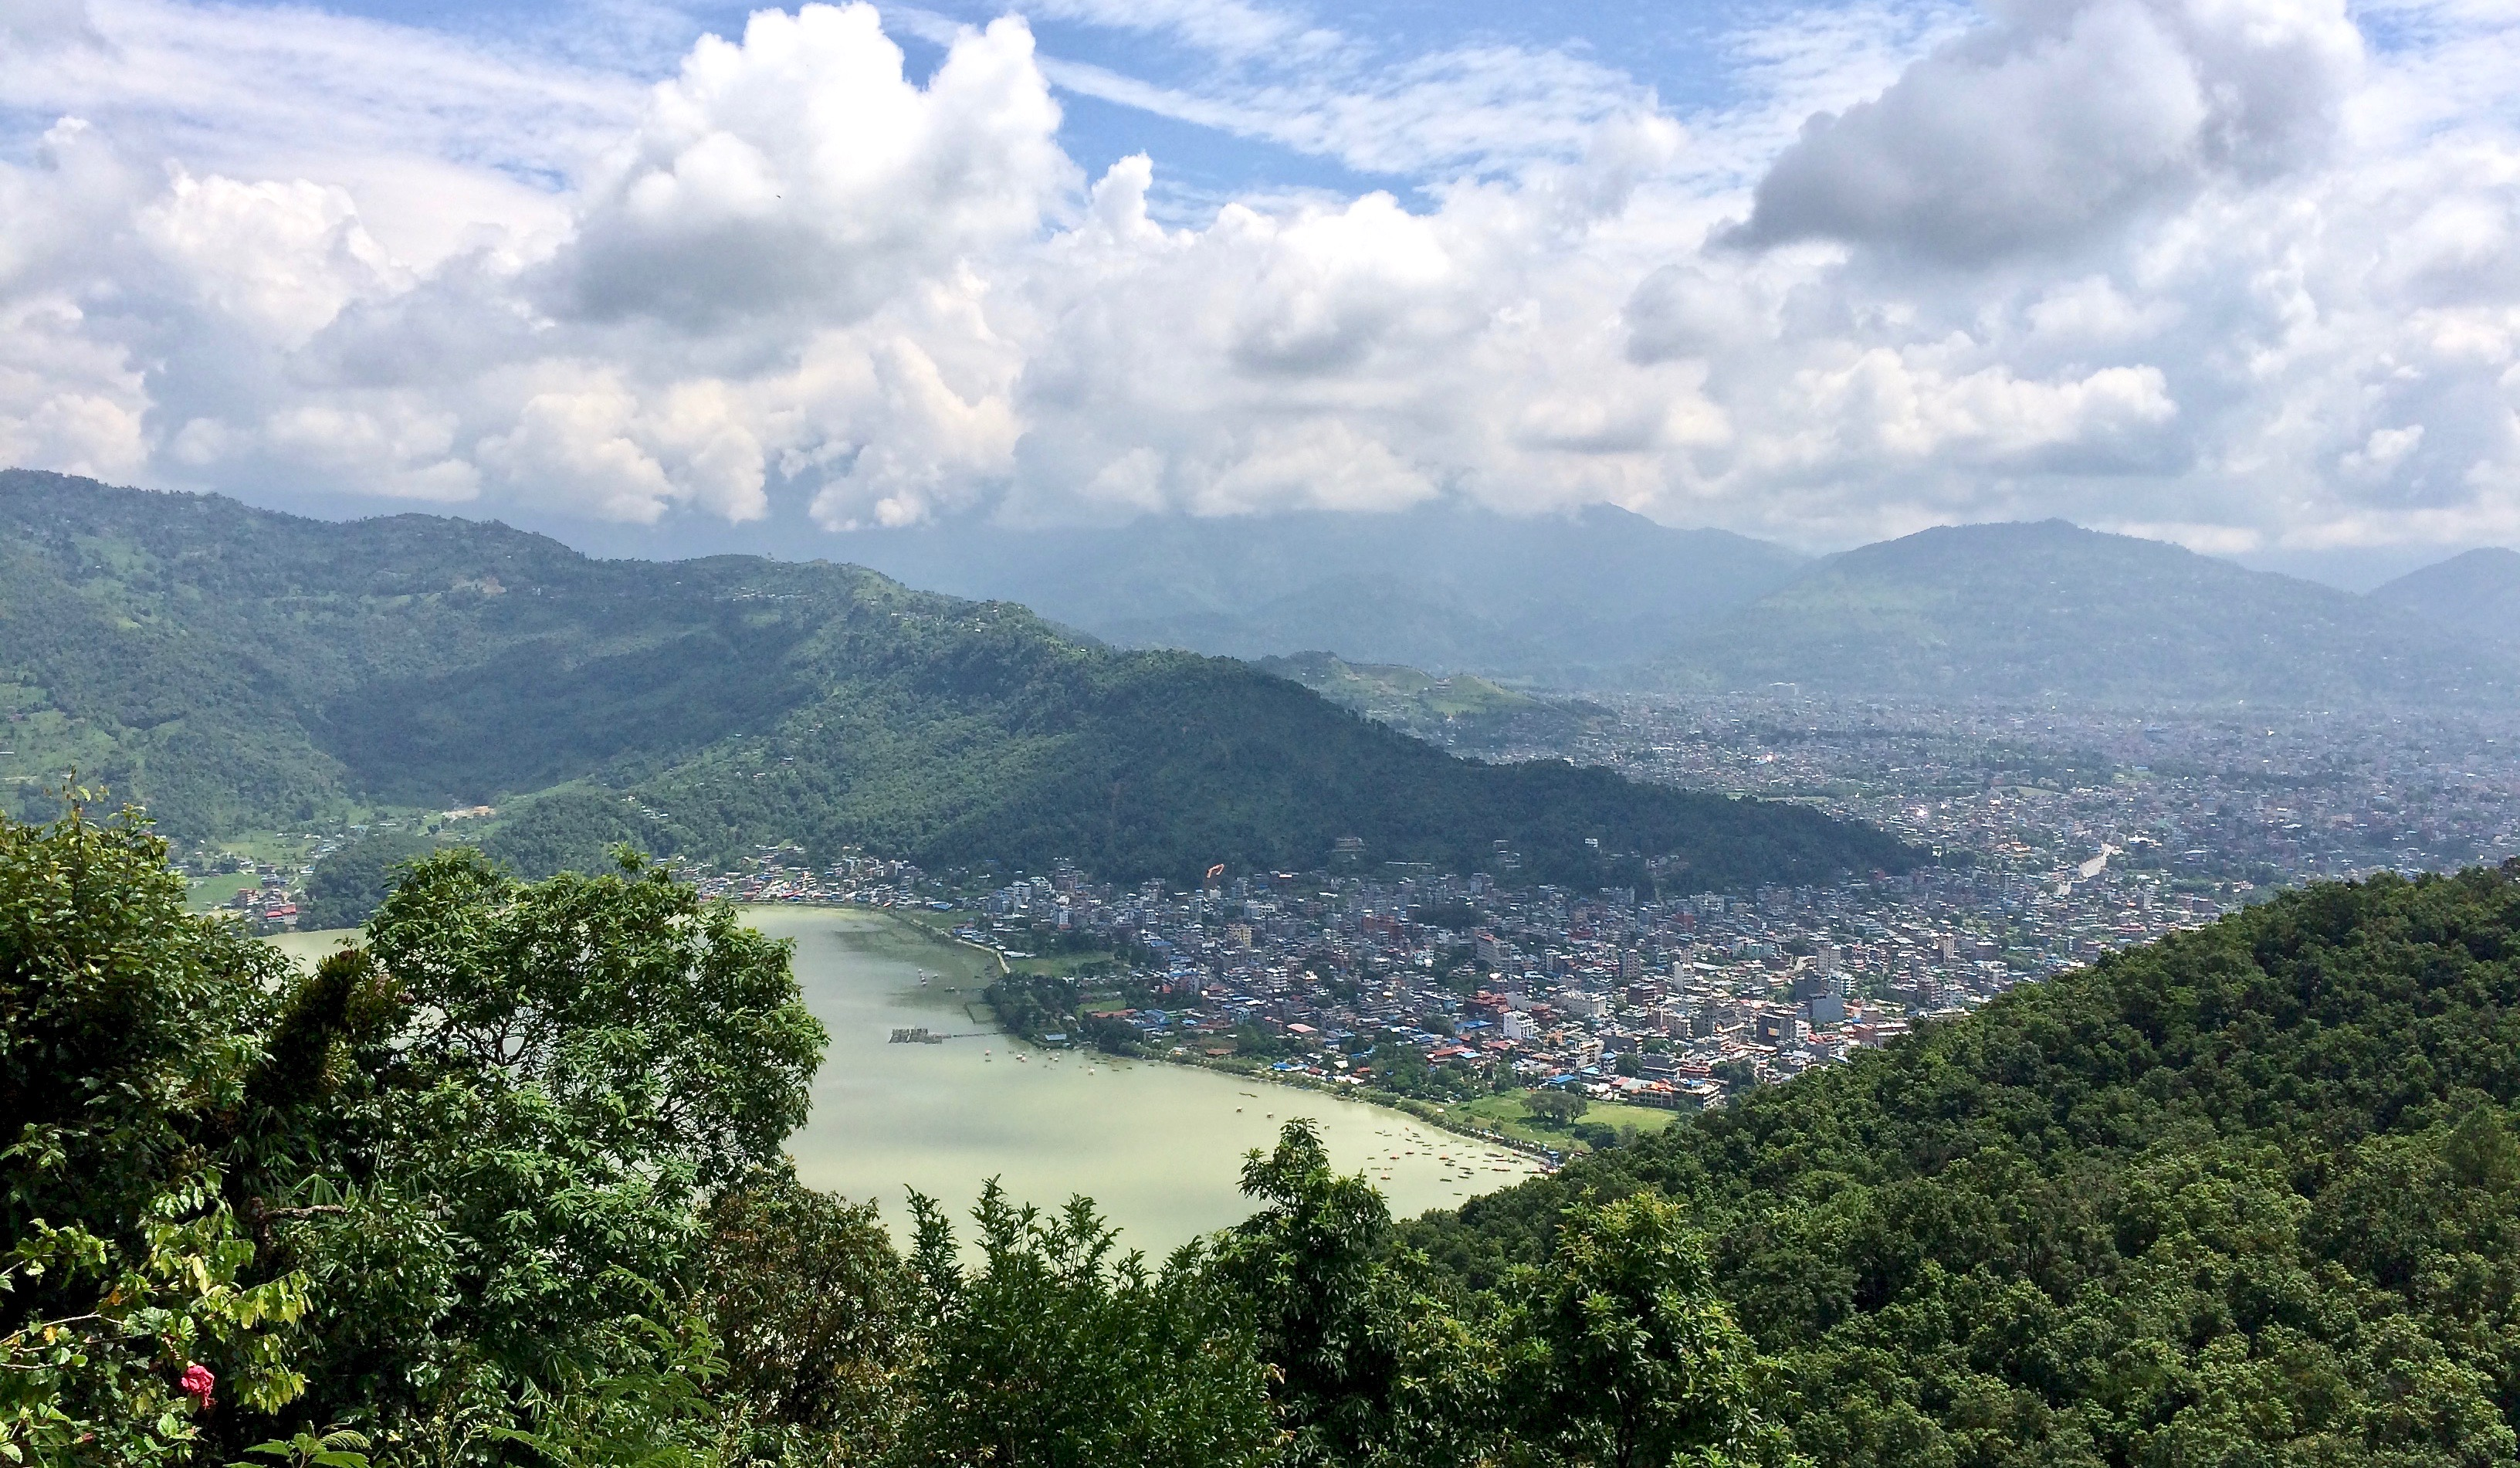 Pokhara town from the World Peace Pagoda